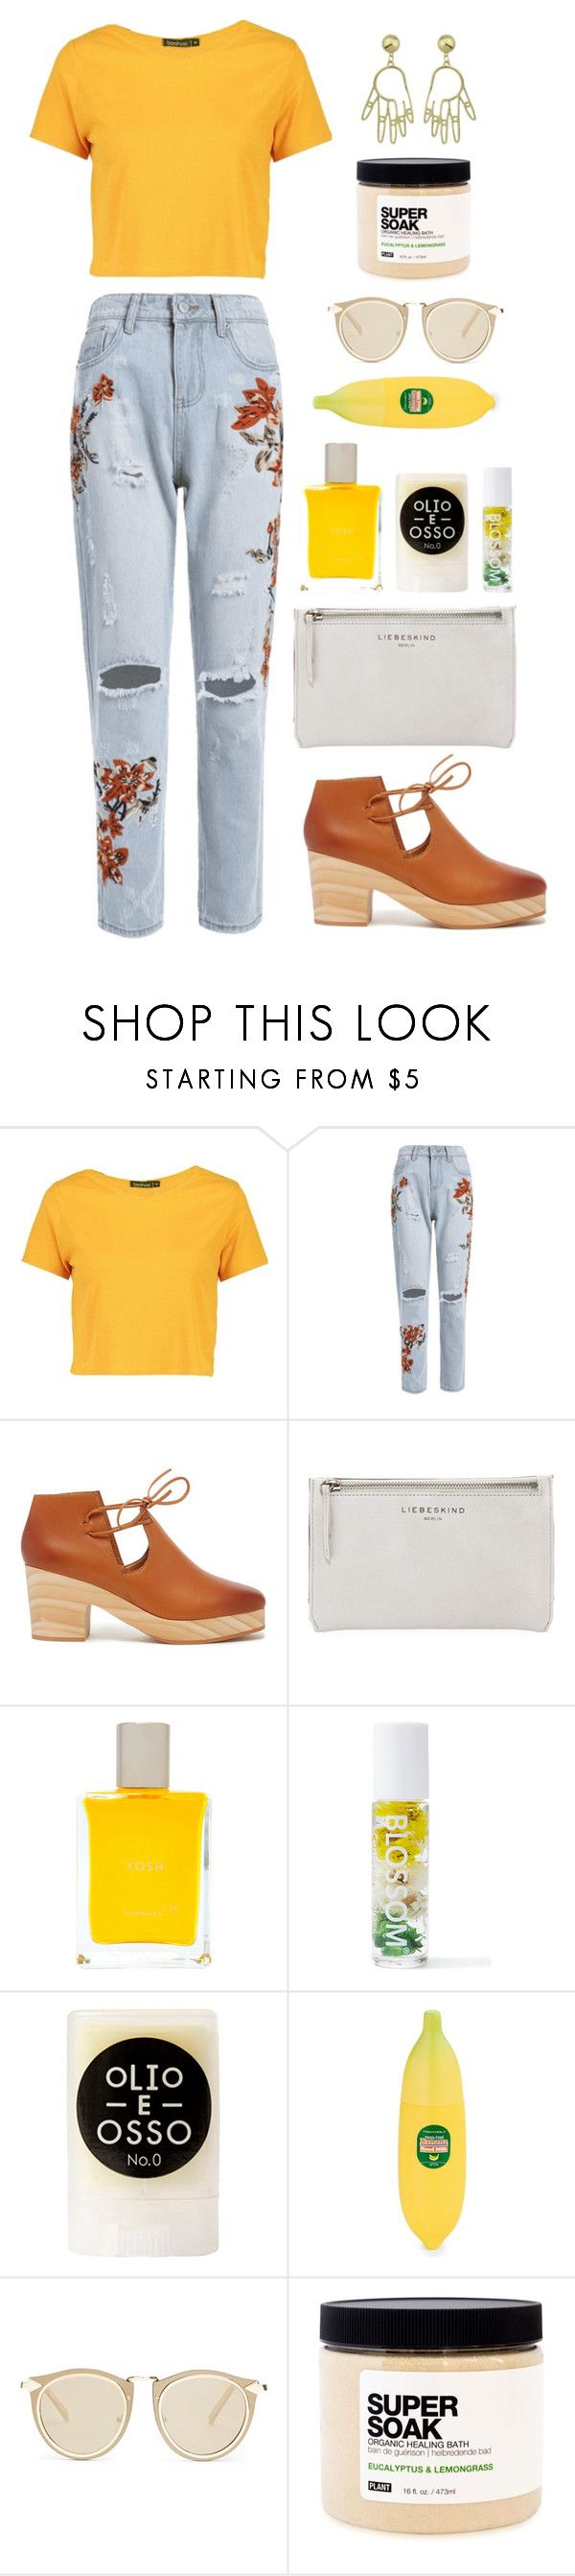 """""""Untitled #192"""" by peachgirl-style ❤ liked on Polyvore featuring Boohoo, Kelsi Dagger Brooklyn, Liebeskind, Yosh, Blossom, Olio E Osso, Tony Moly, Karen Walker, Plant Apothecary and BackToSchool"""